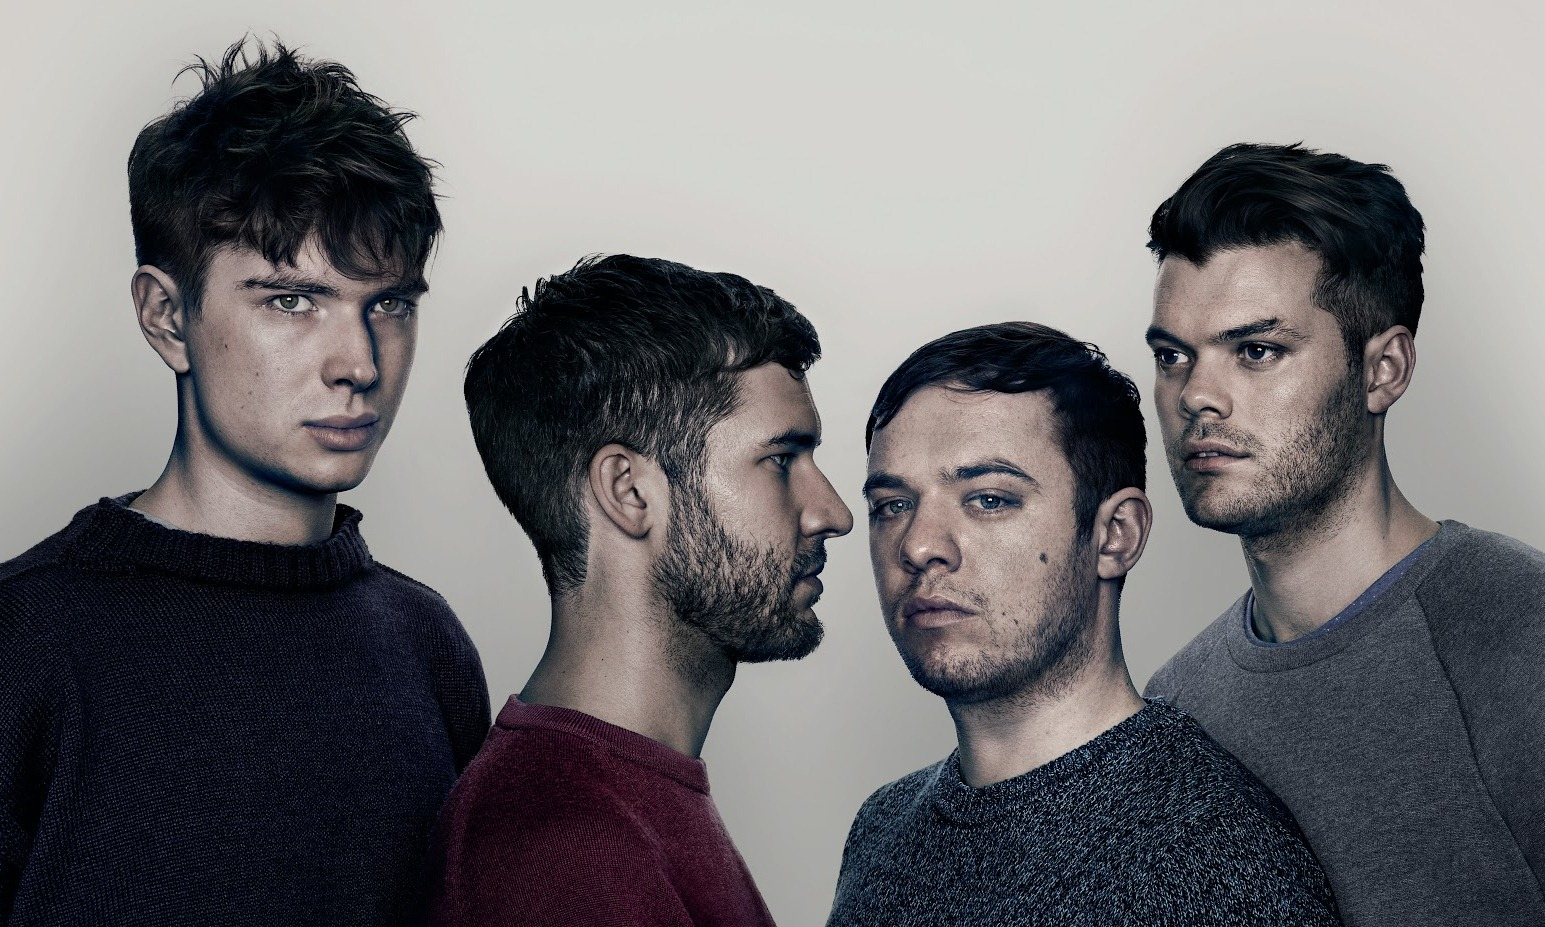 Interview with Johnathan Higgs of Manchester, UK band Everything Everything.